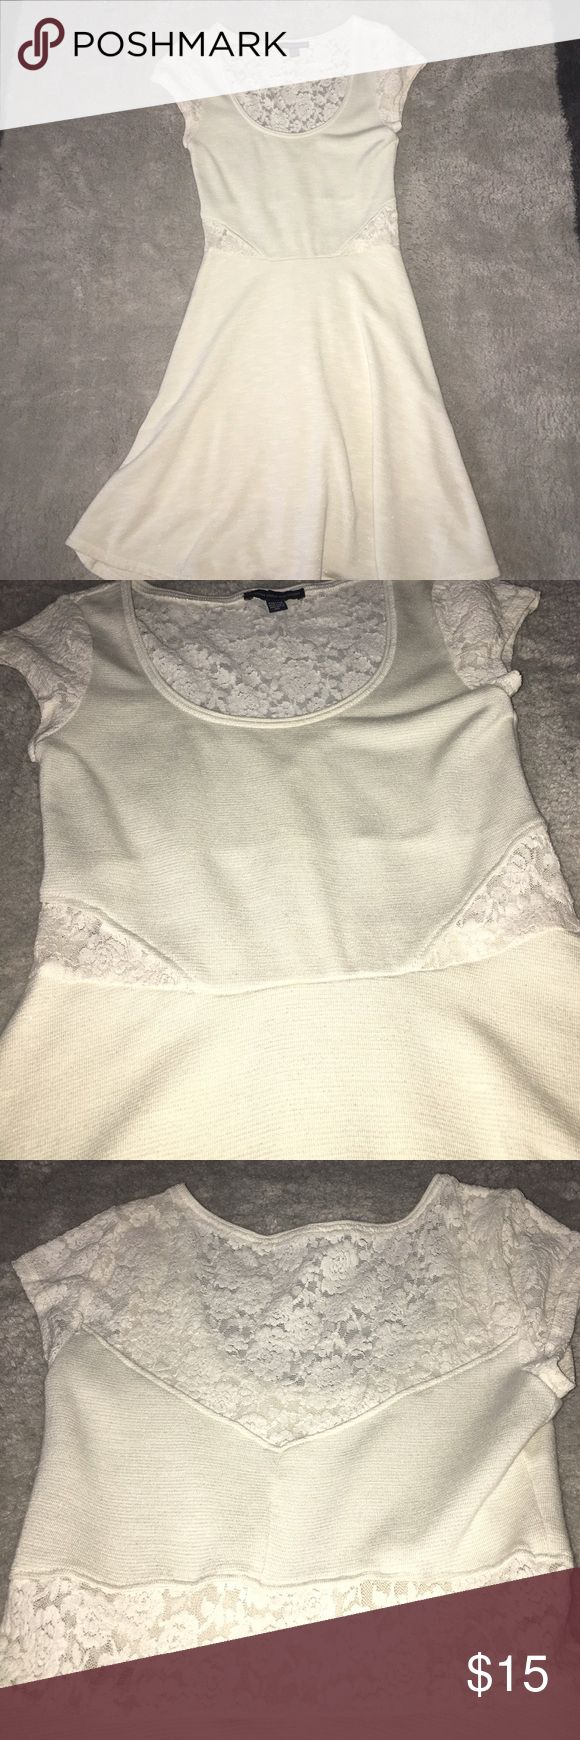 Beige Mini Dress Worn only once!! Low cut in the front and snug to the waist American Eagle Outfitters Dresses Mini